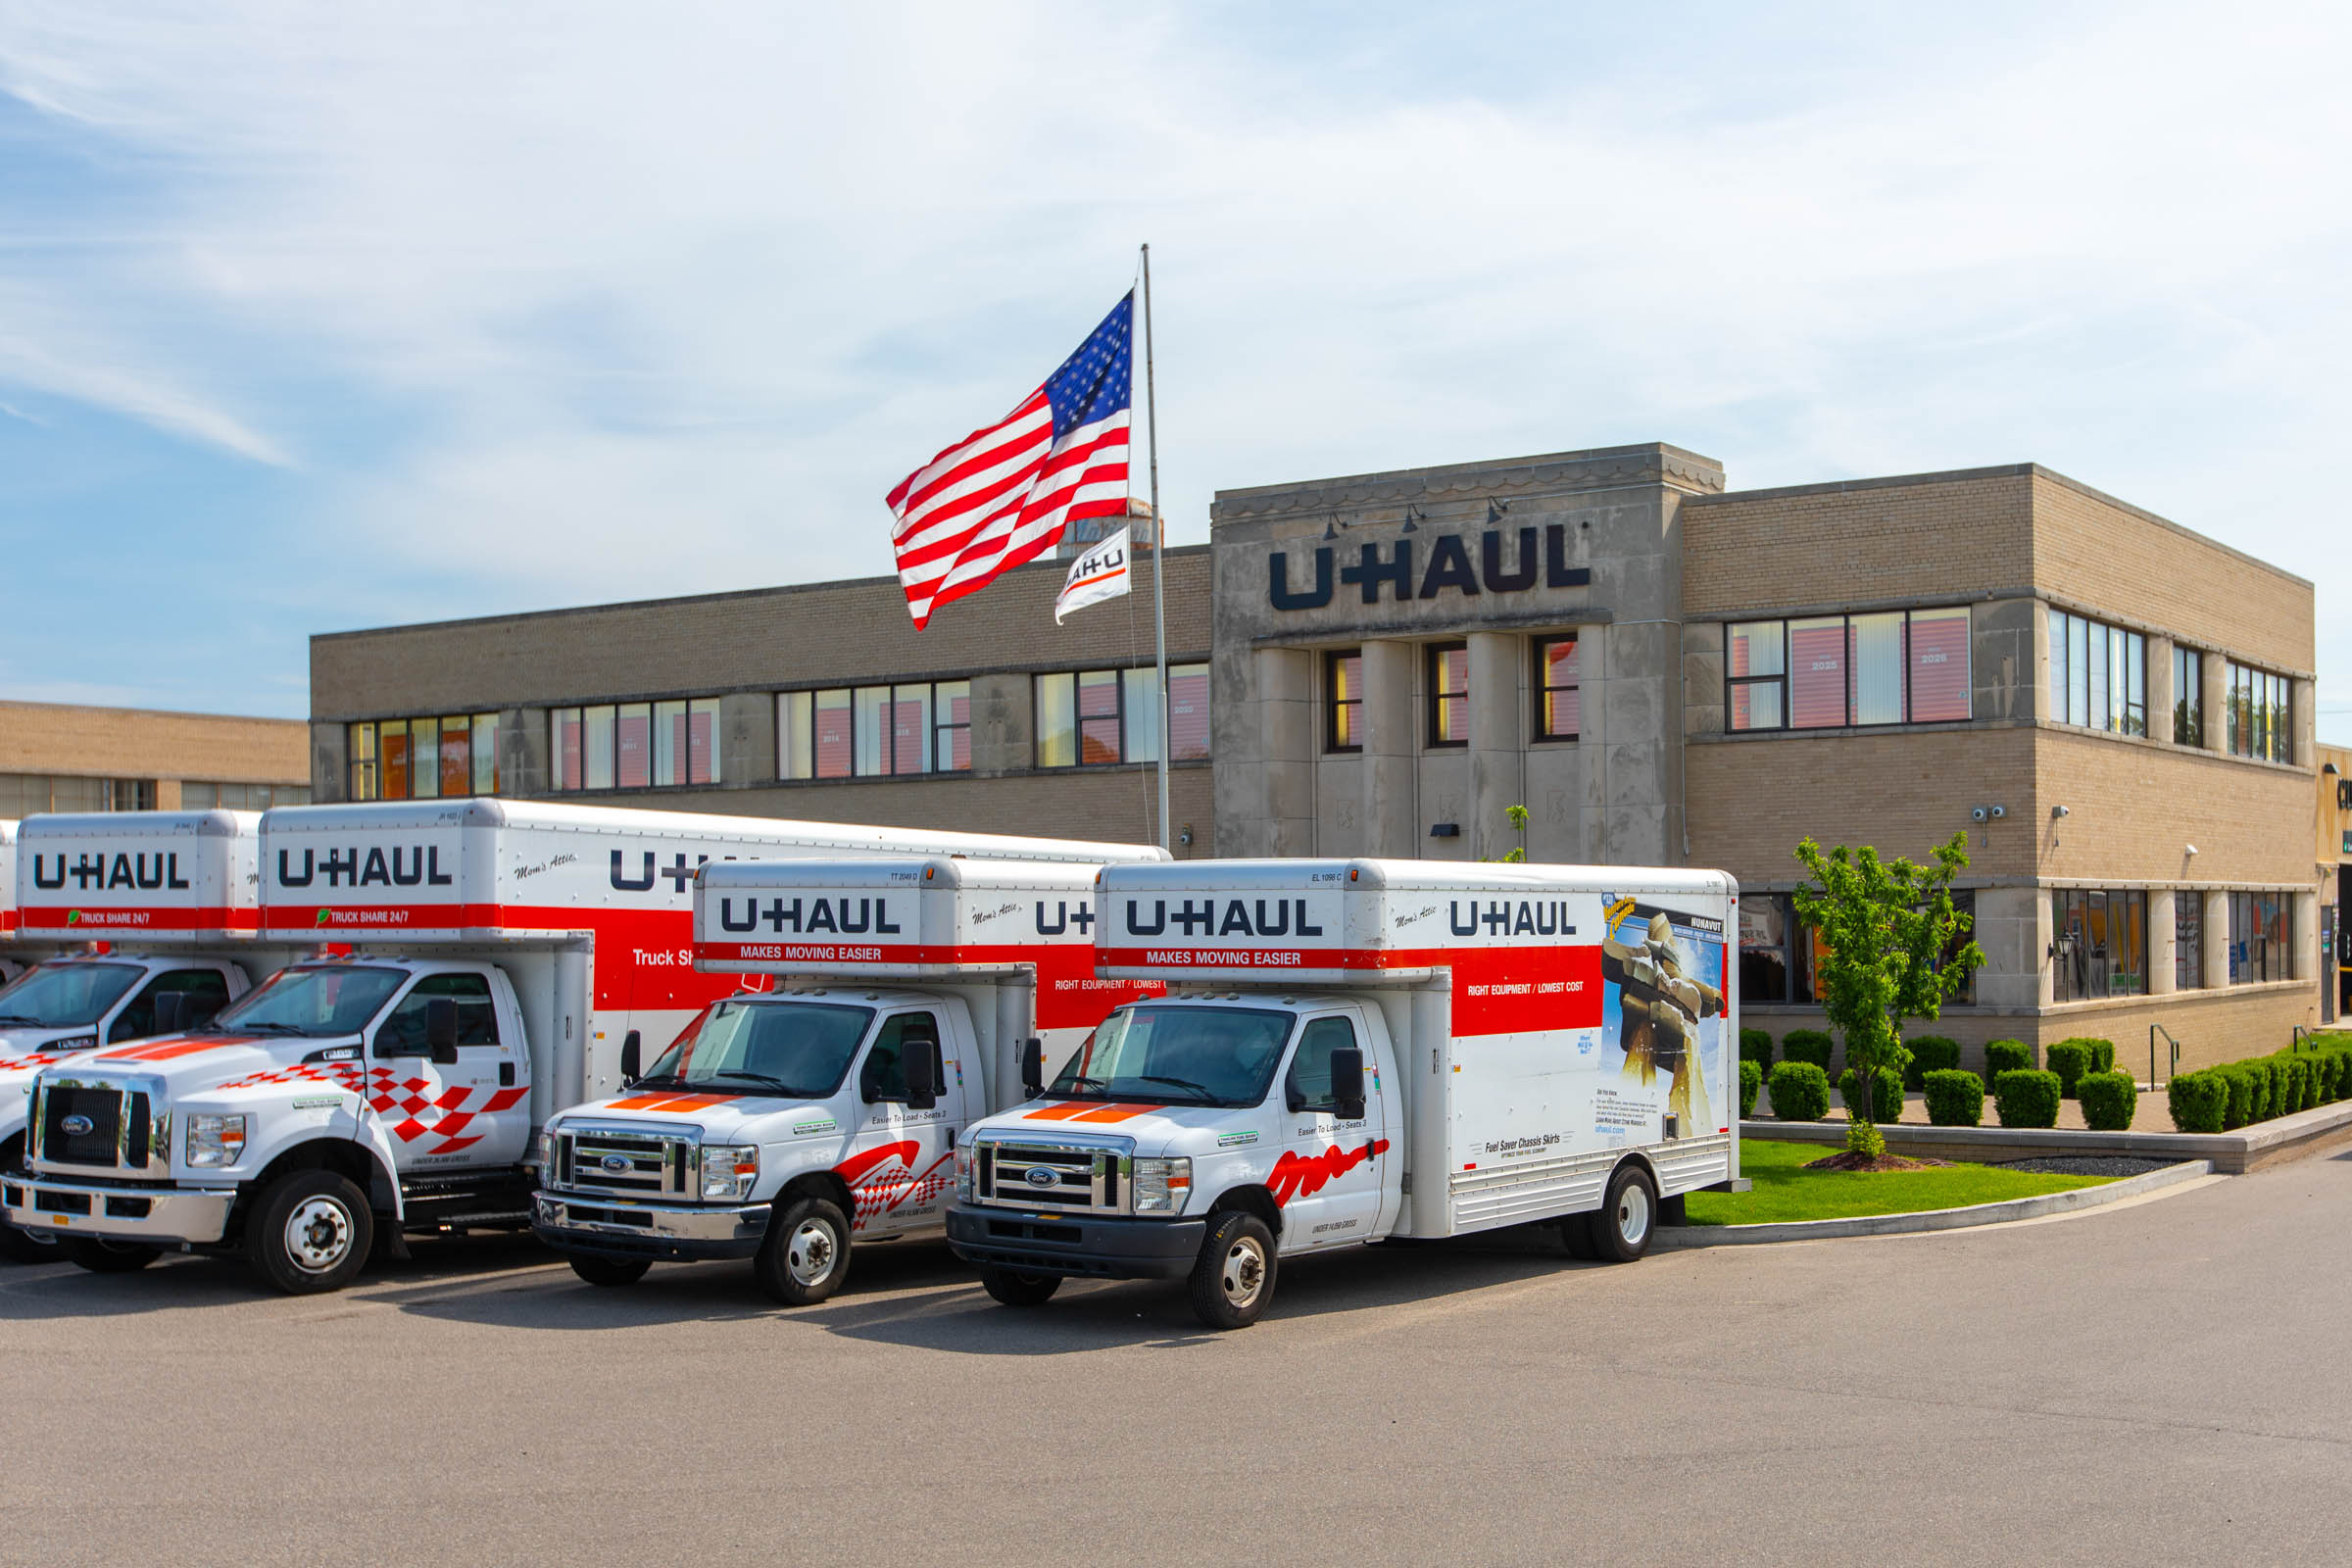 In early March, U-Haul was among the first U.S. companies to provide public assistance during the pandemic, offering 30 days of free self-storage to all students with college IDs whose lives were changed by campuses closing for the spring term. The offer is ongoing at all U-Haul-owned facilities in North America (subject to availability).